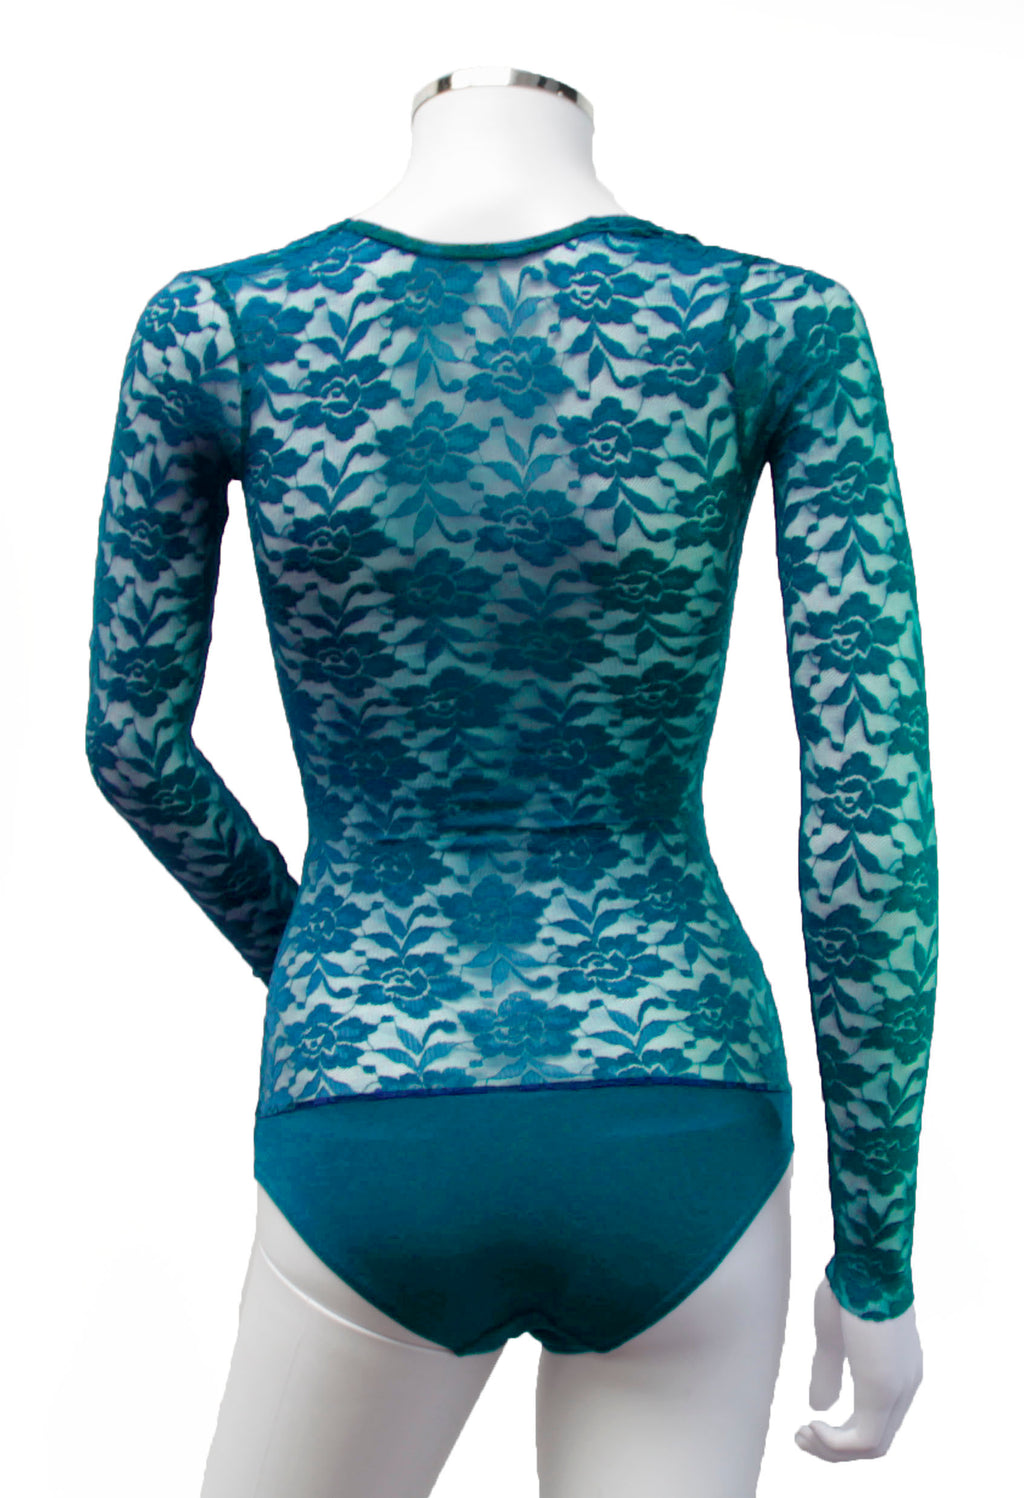 Underbust with Sleeves - Turquoise Lace